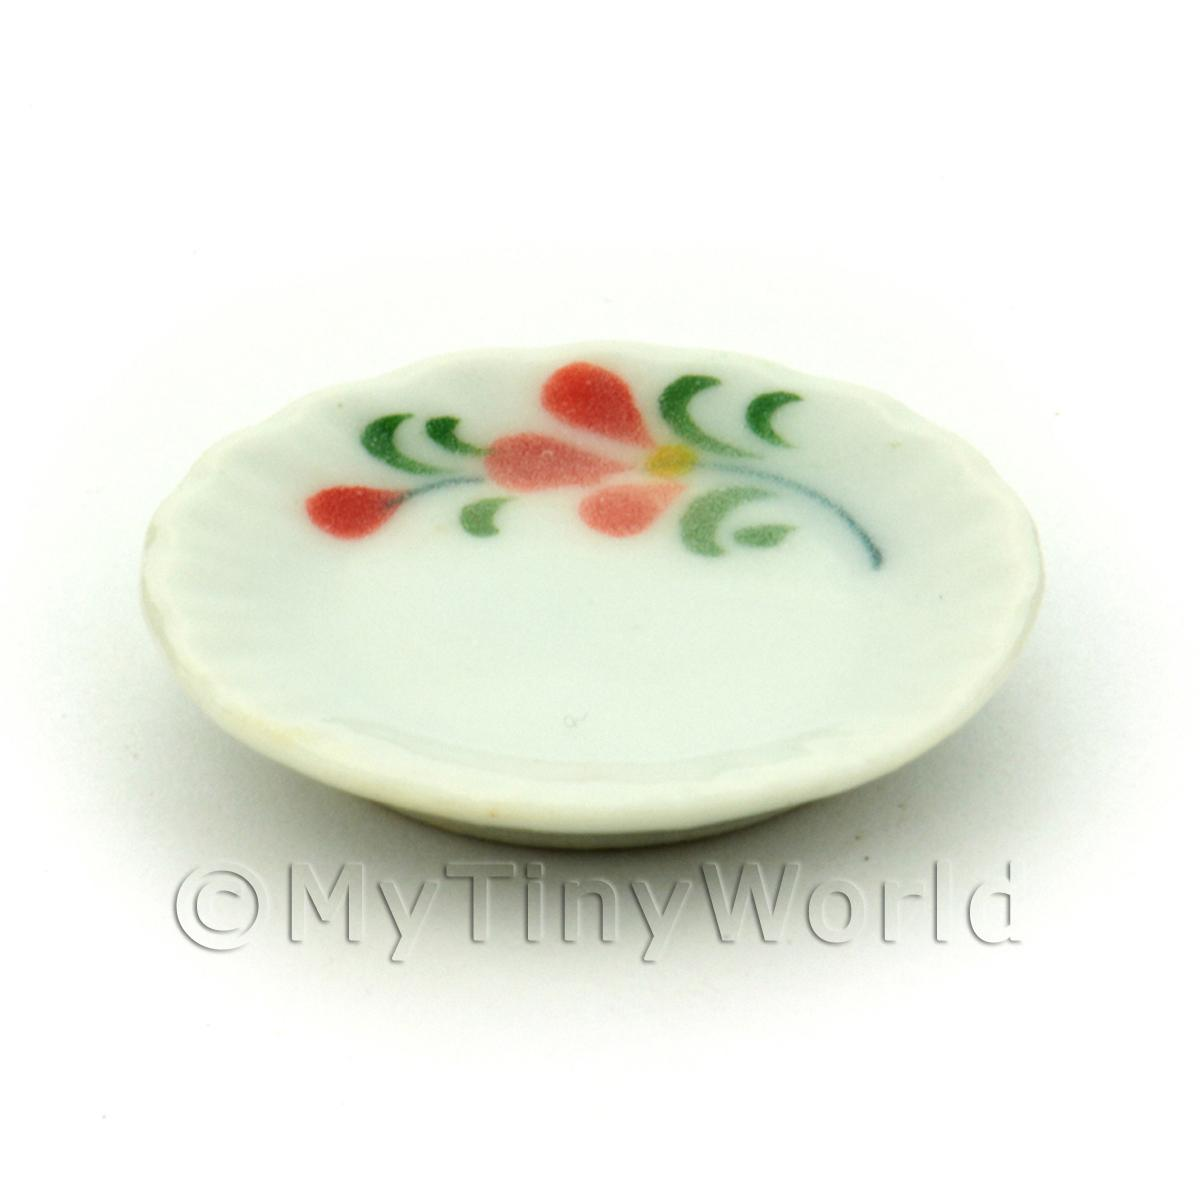 Dolls House Miniature Red Orchid Design 22mm Ceramic Plate